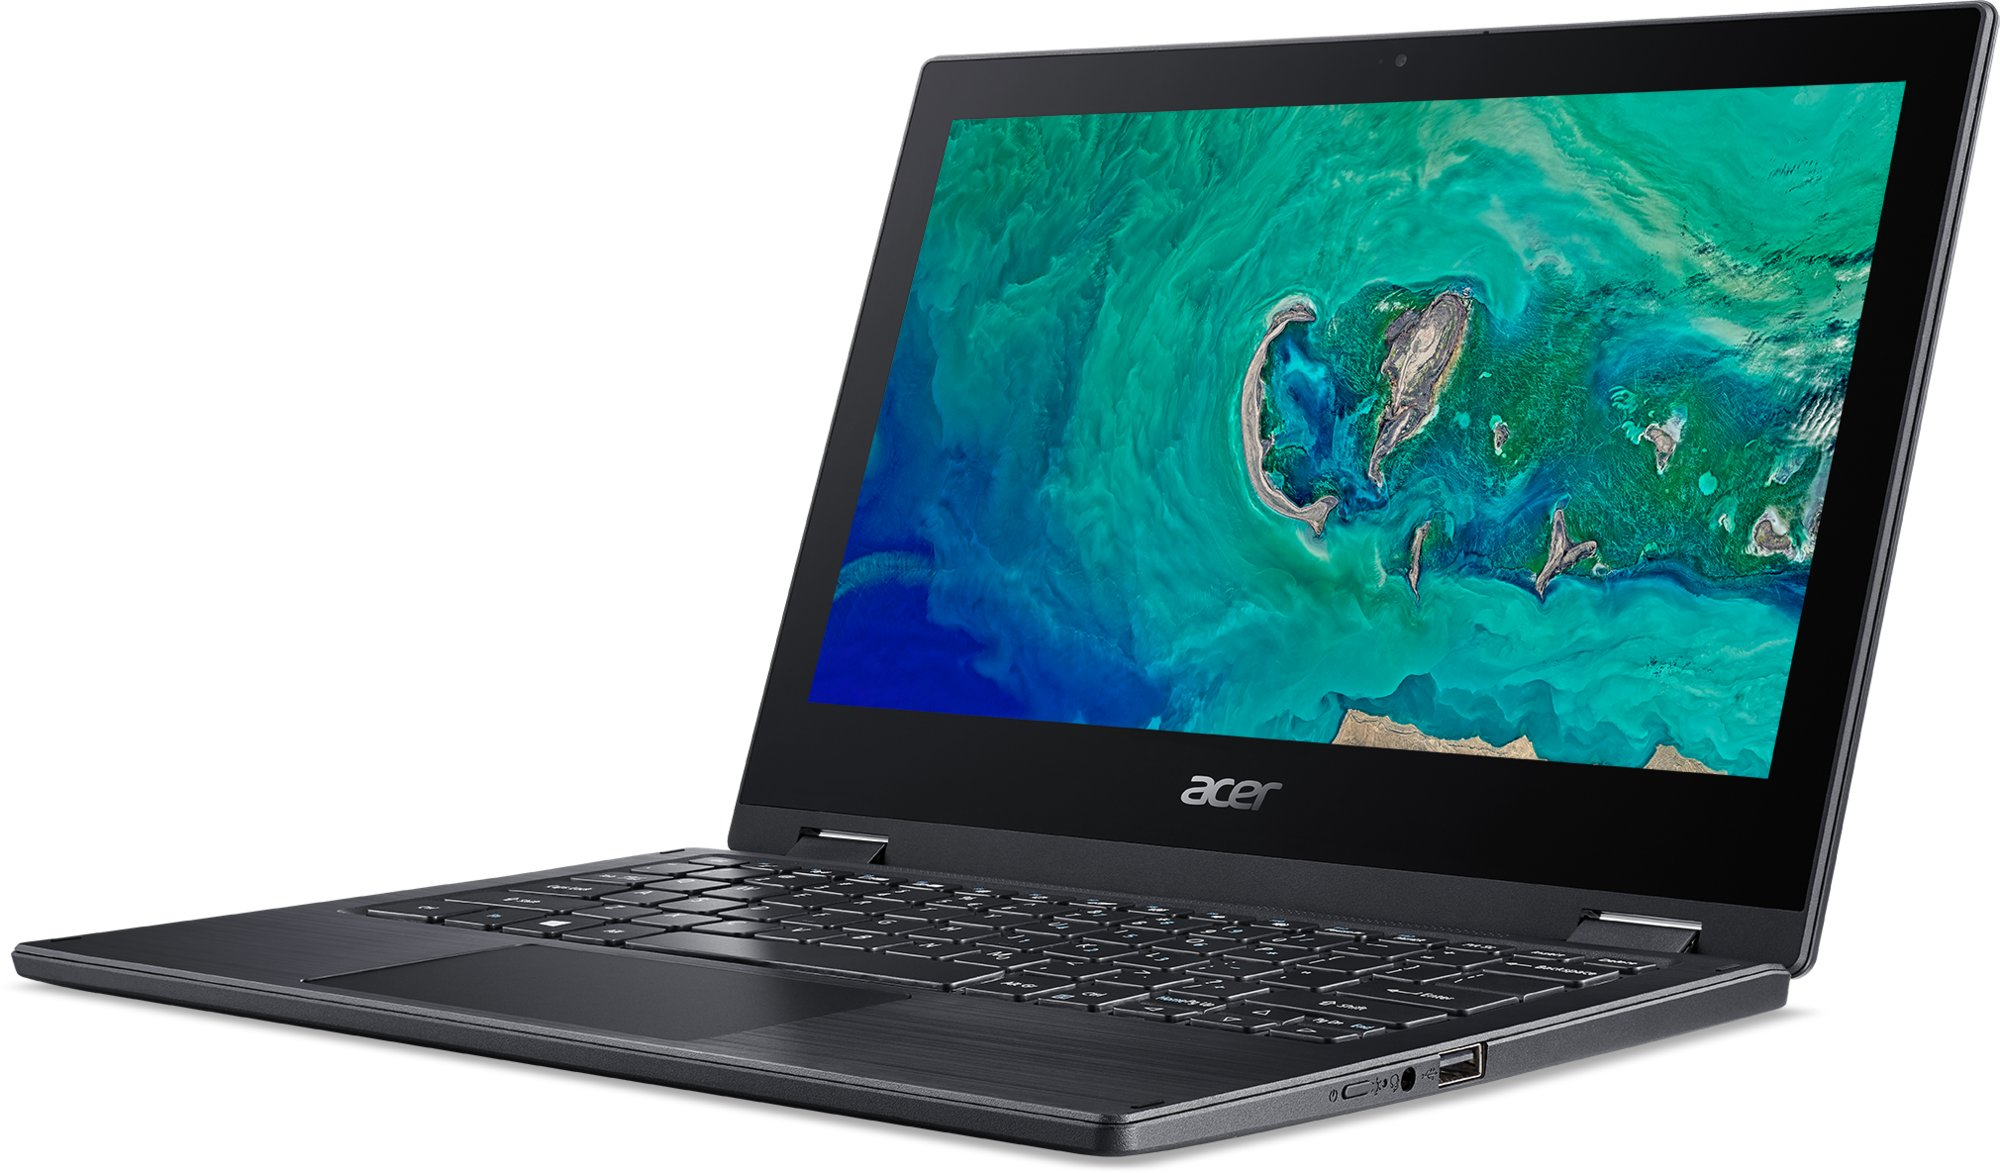 Acer Spin 1 SP111-33-P488